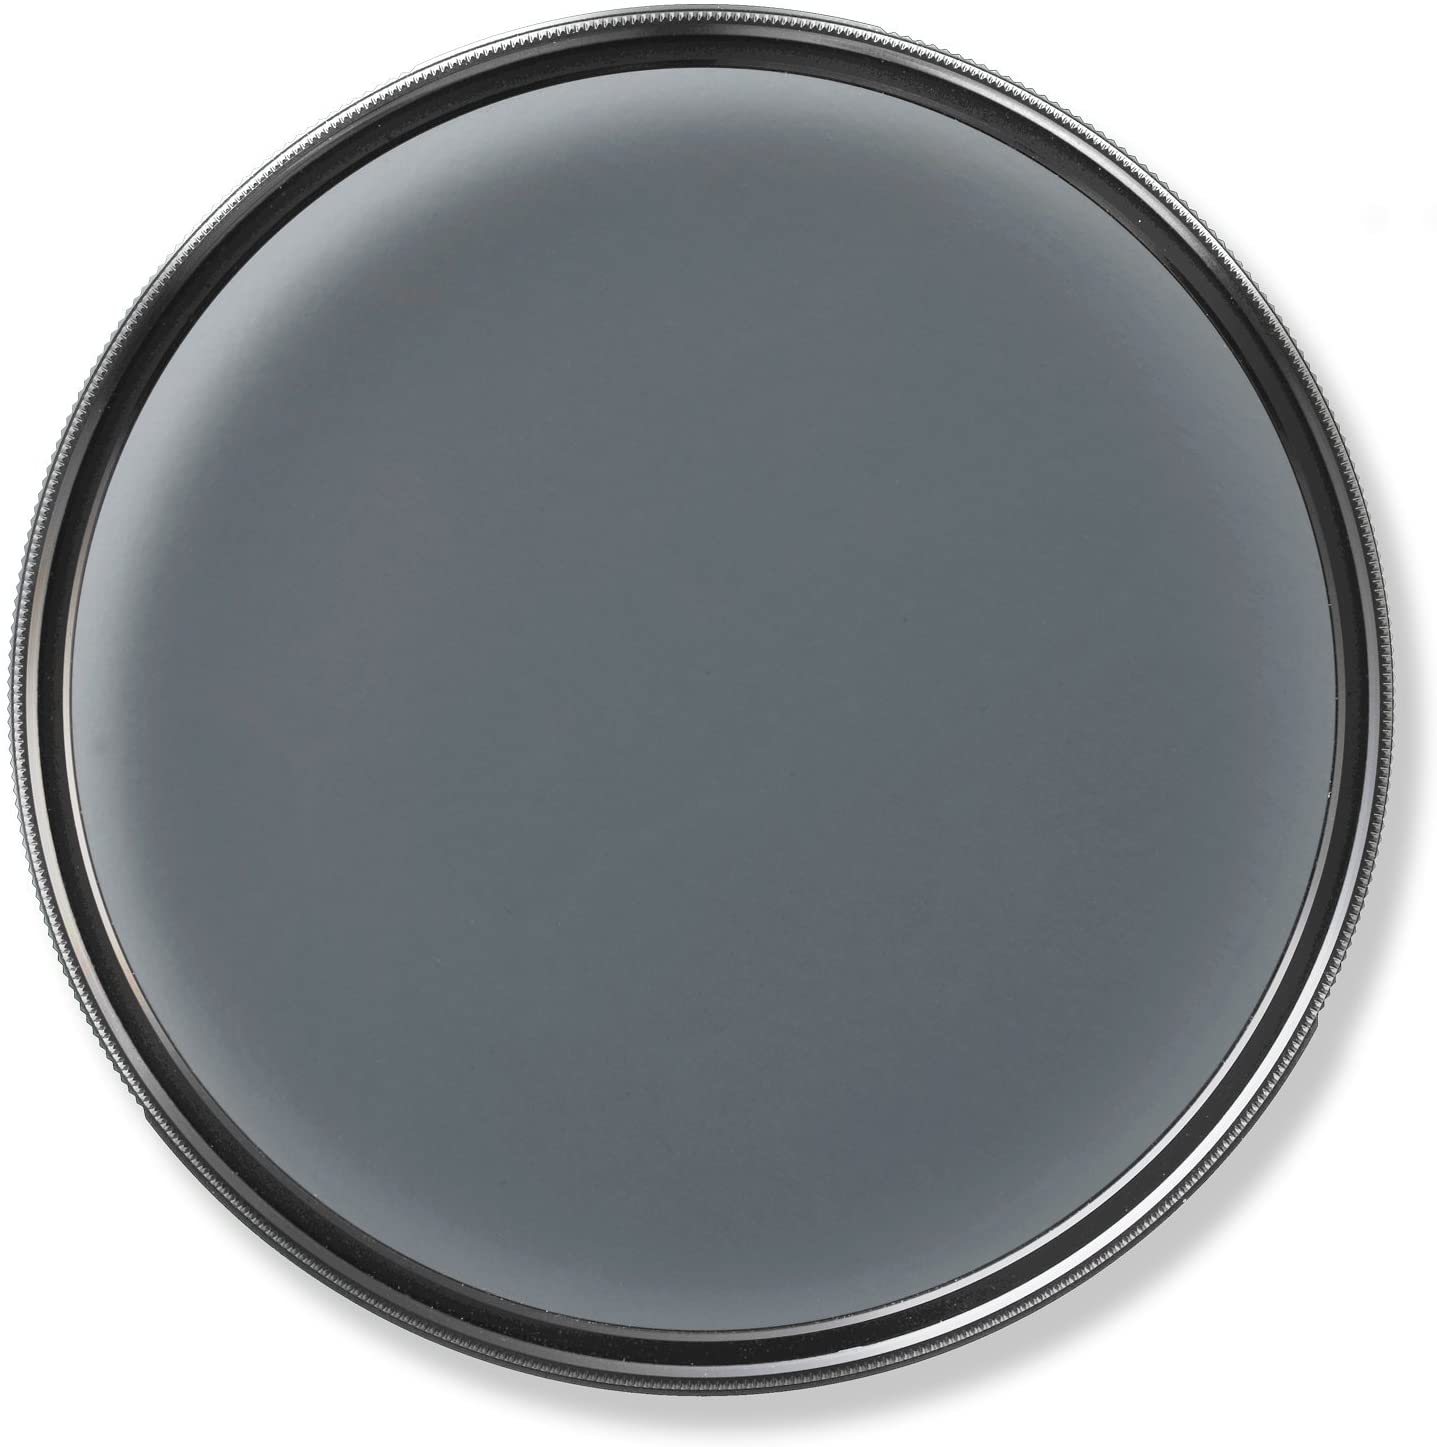 Carl Zeiss T POL Circular Photo Filter, 62mm